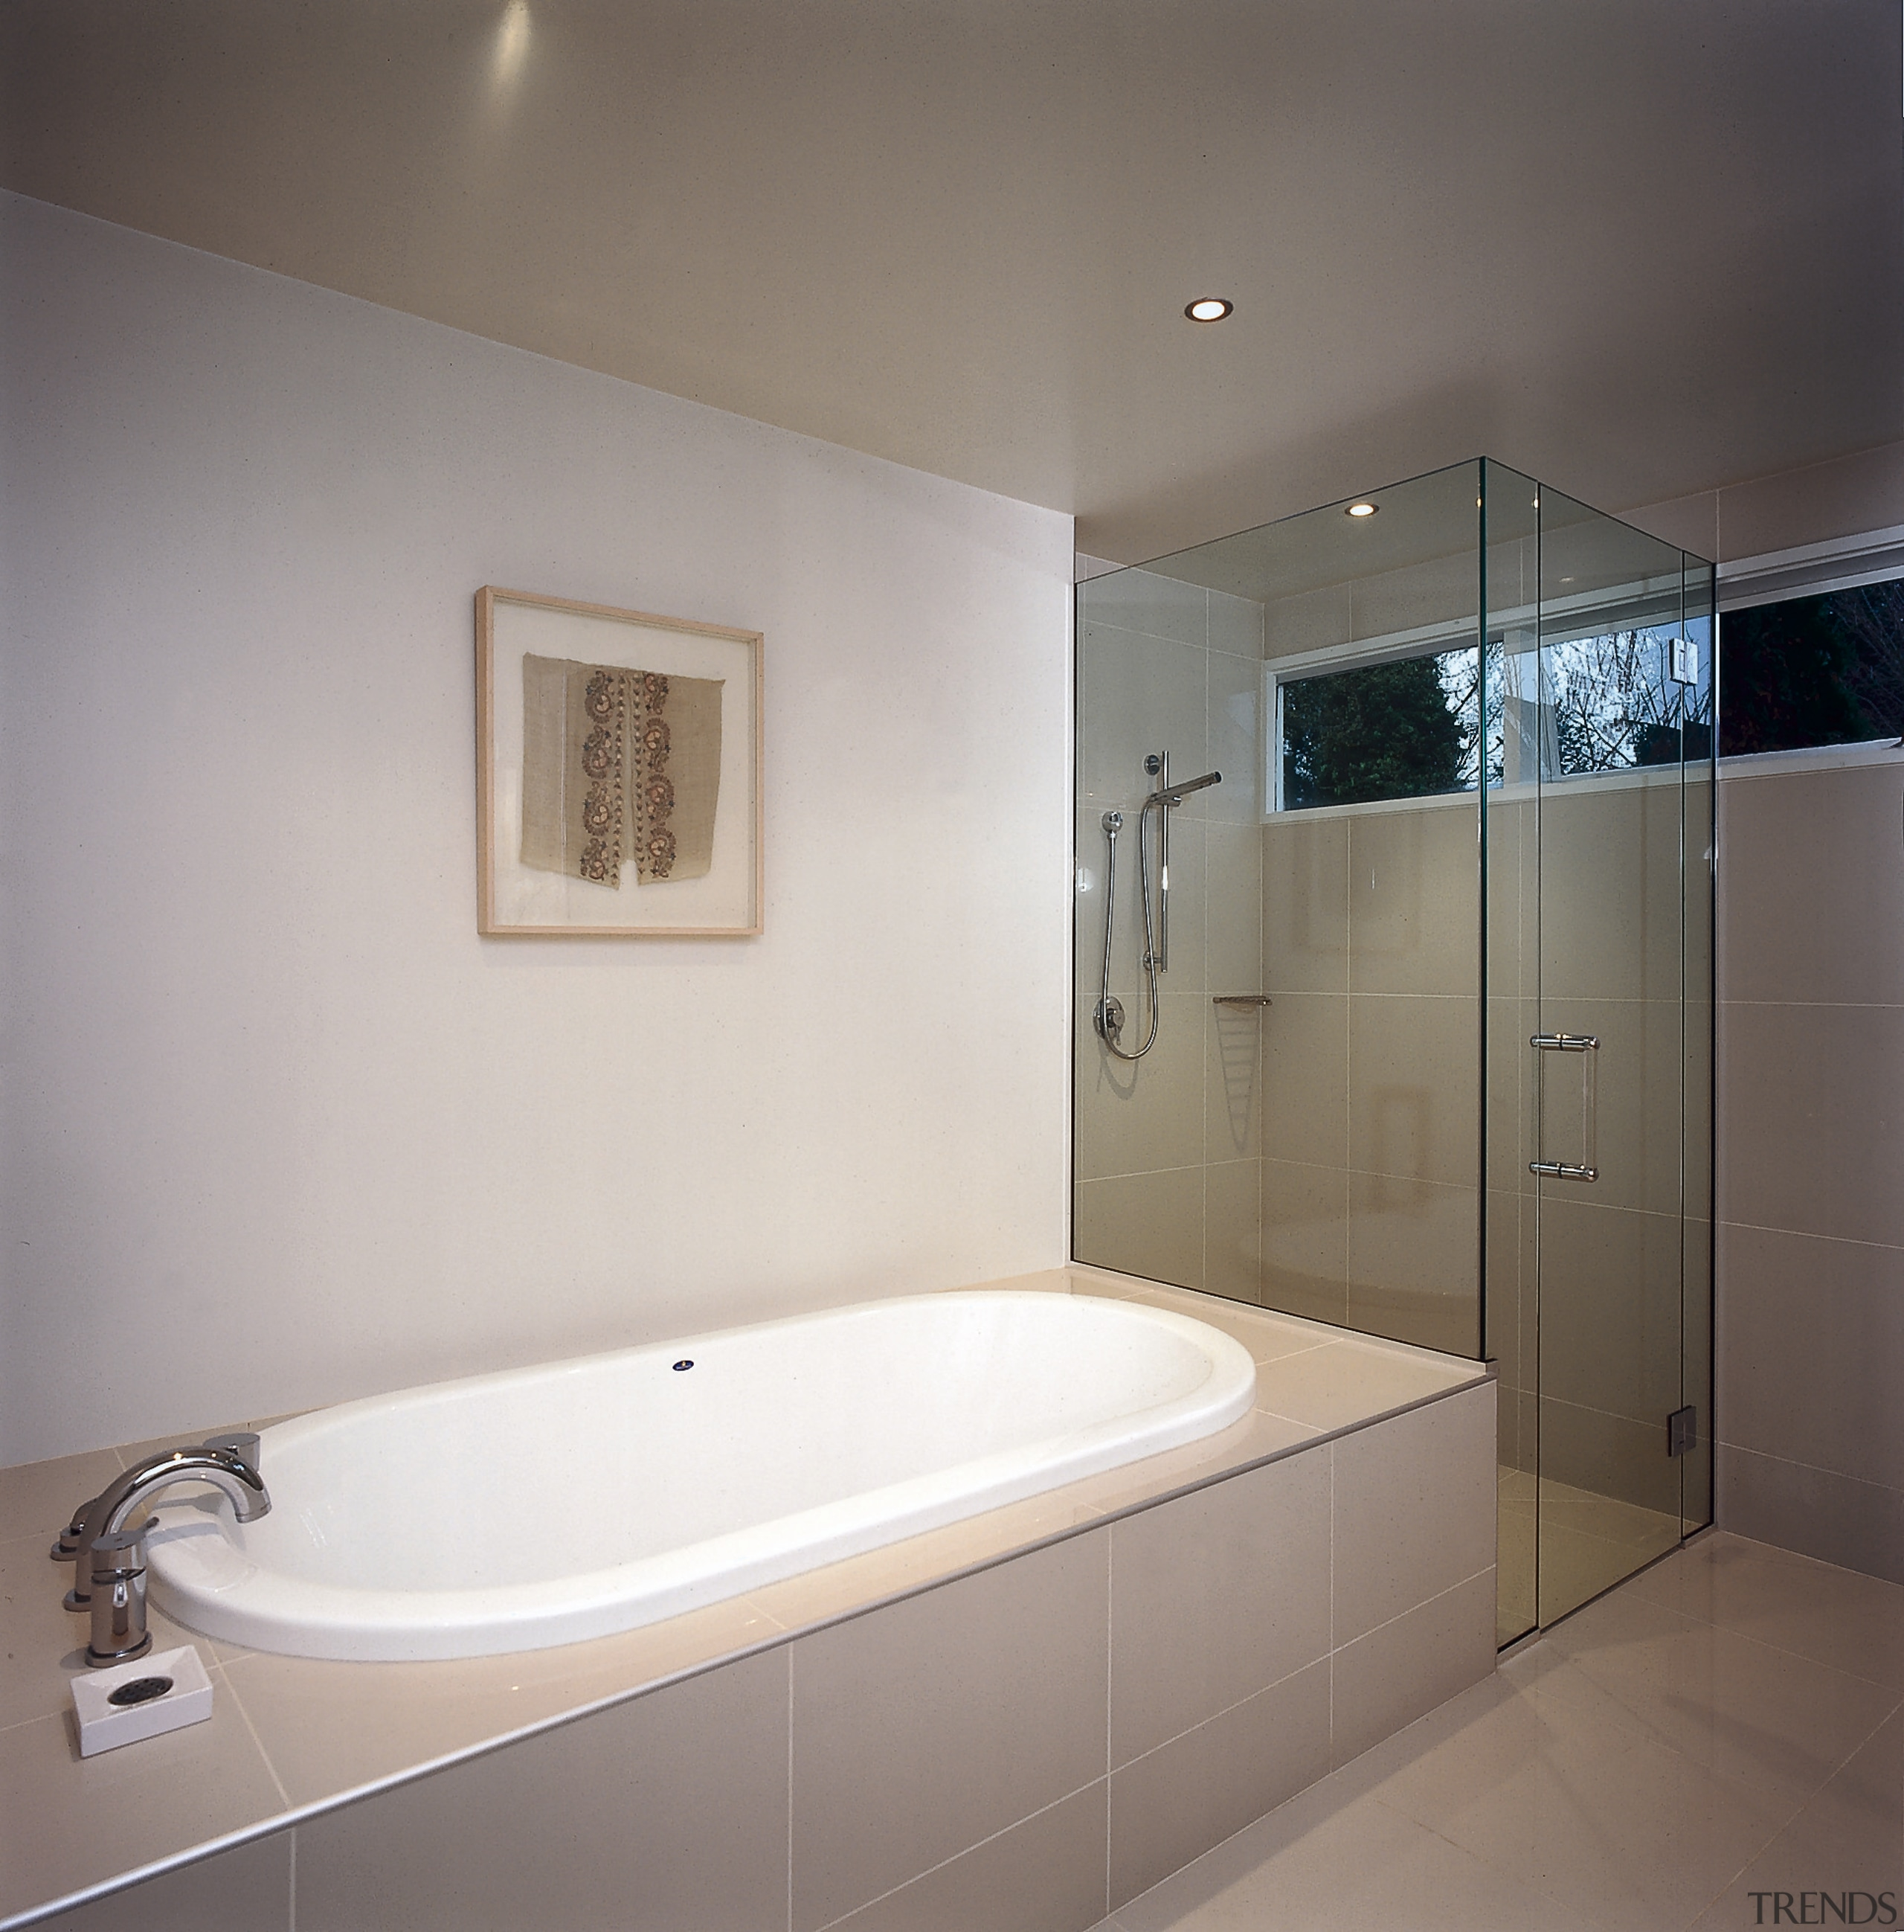 The view of a bathroom showing a bath bathroom, bathtub, floor, home, interior design, lighting, plumbing fixture, property, room, tile, gray